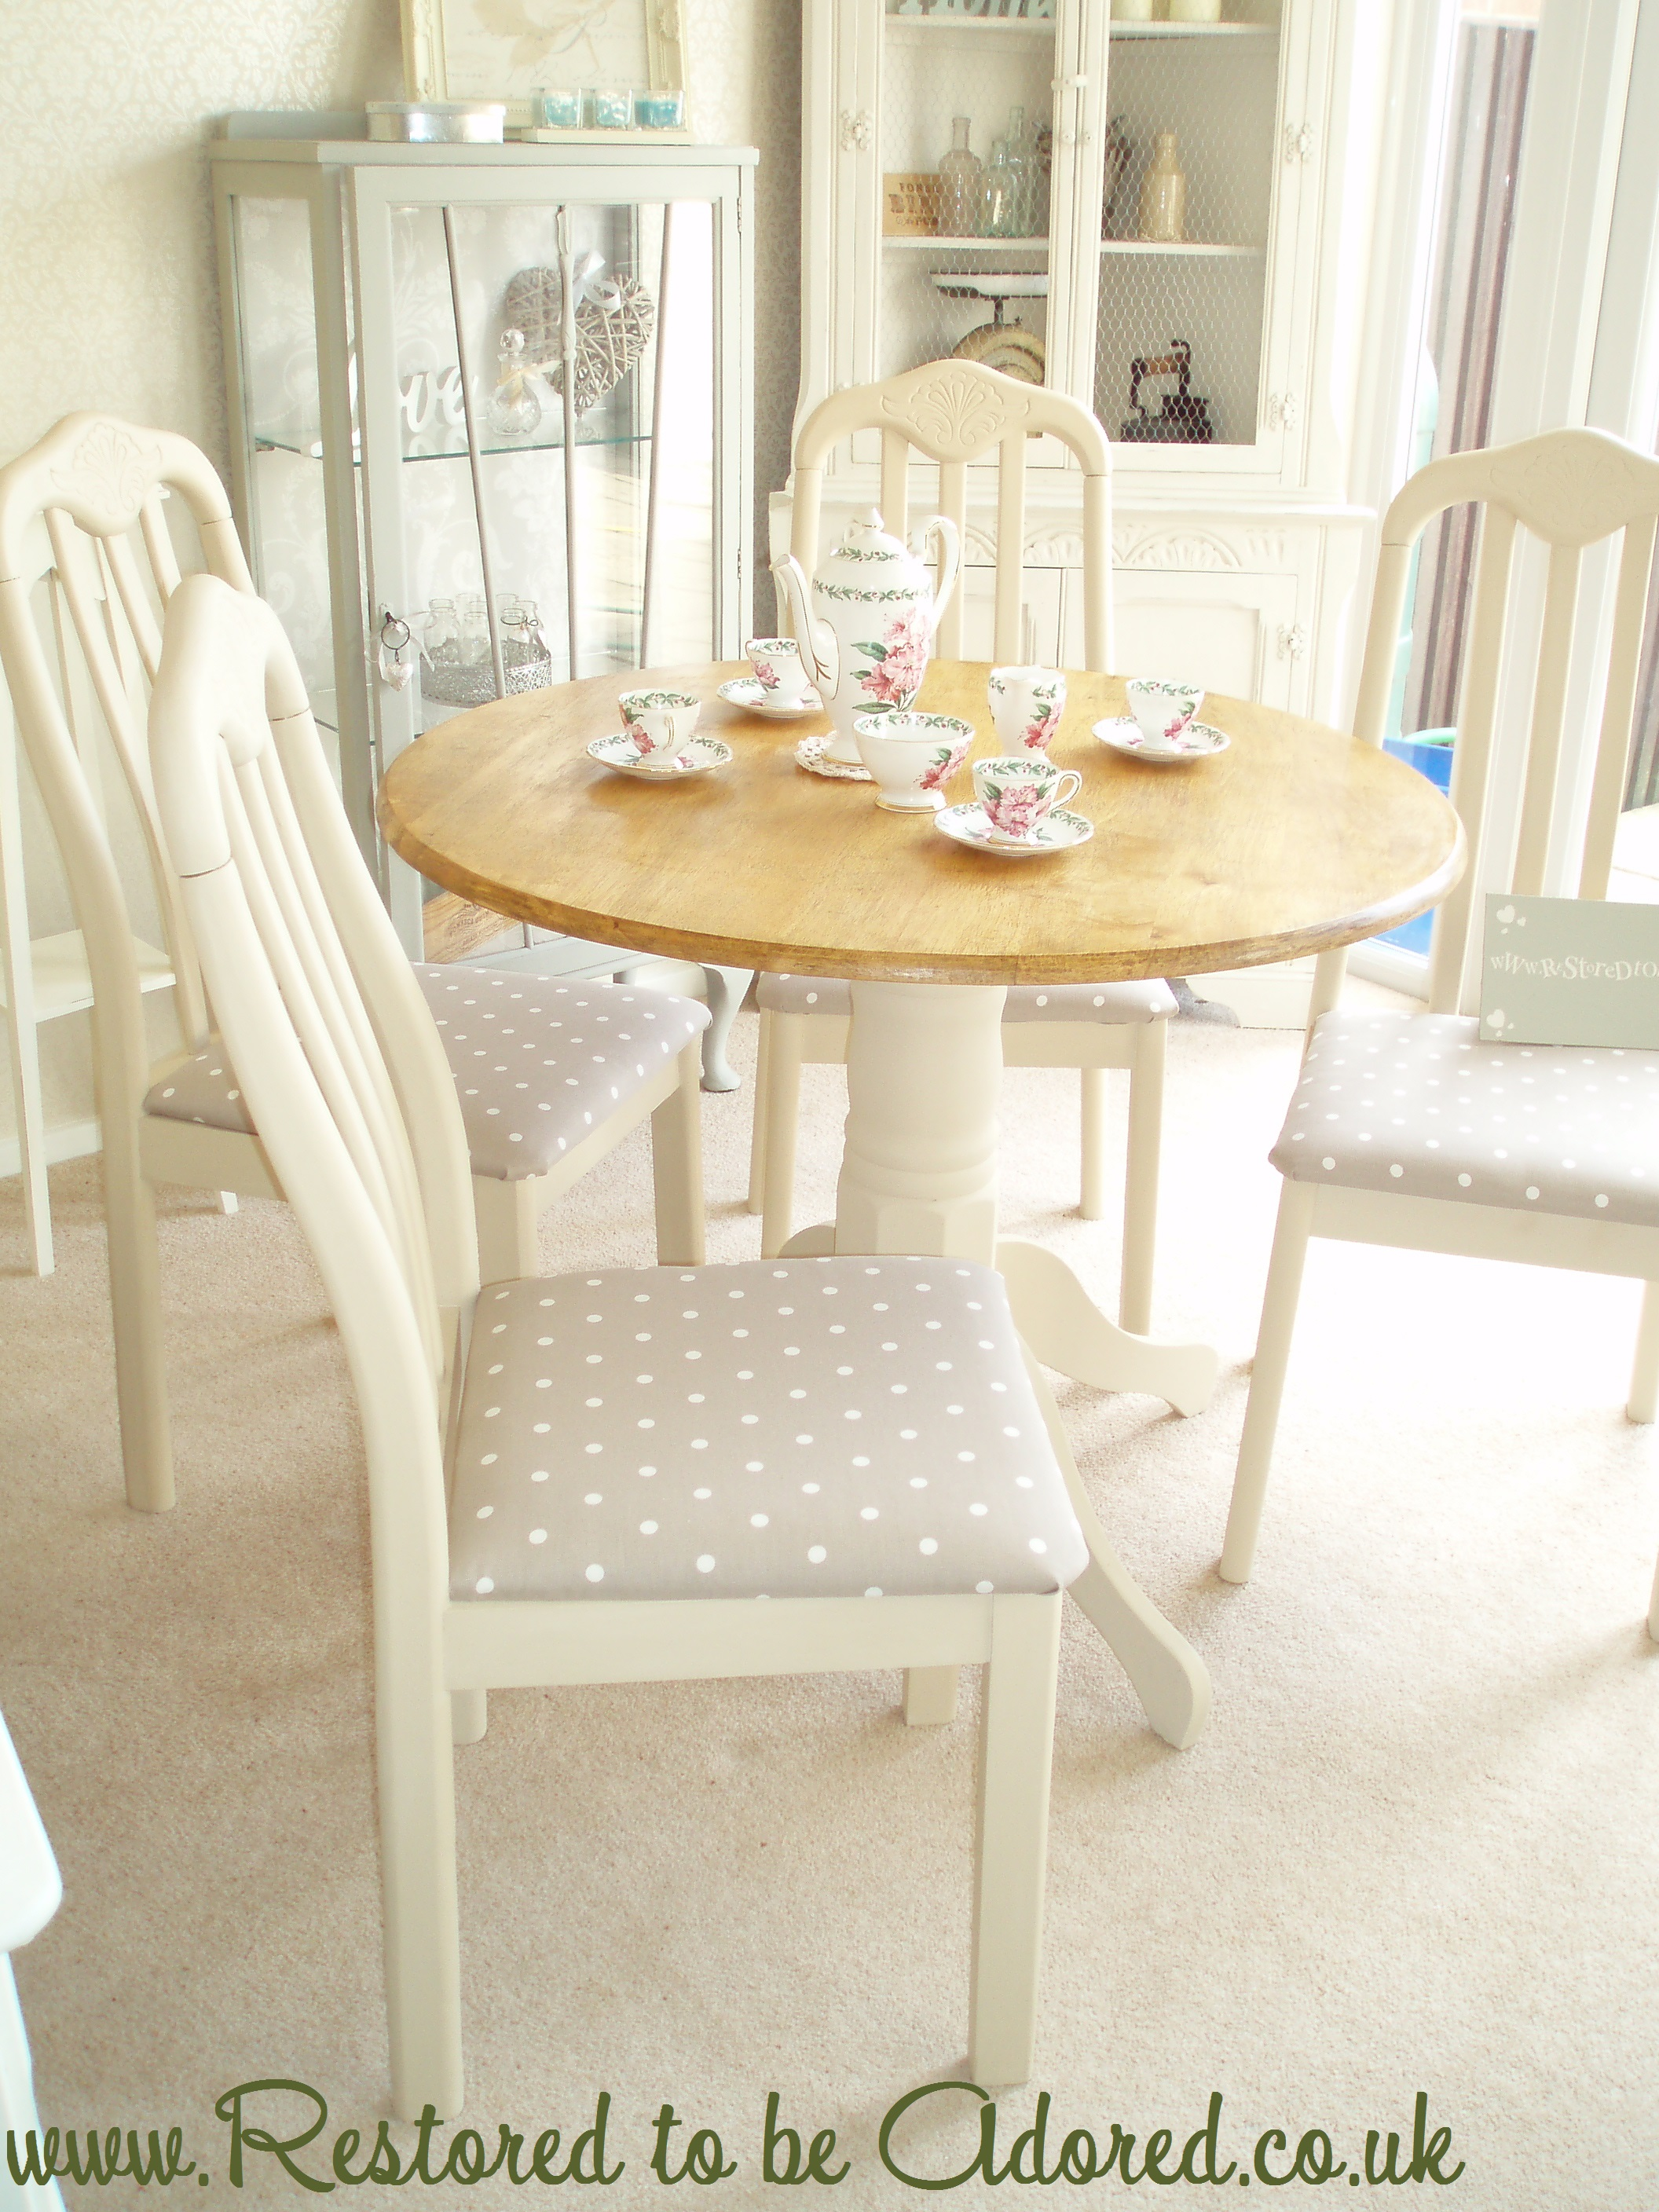 Shabby Chic Round Dining Table – Restored to be Adored